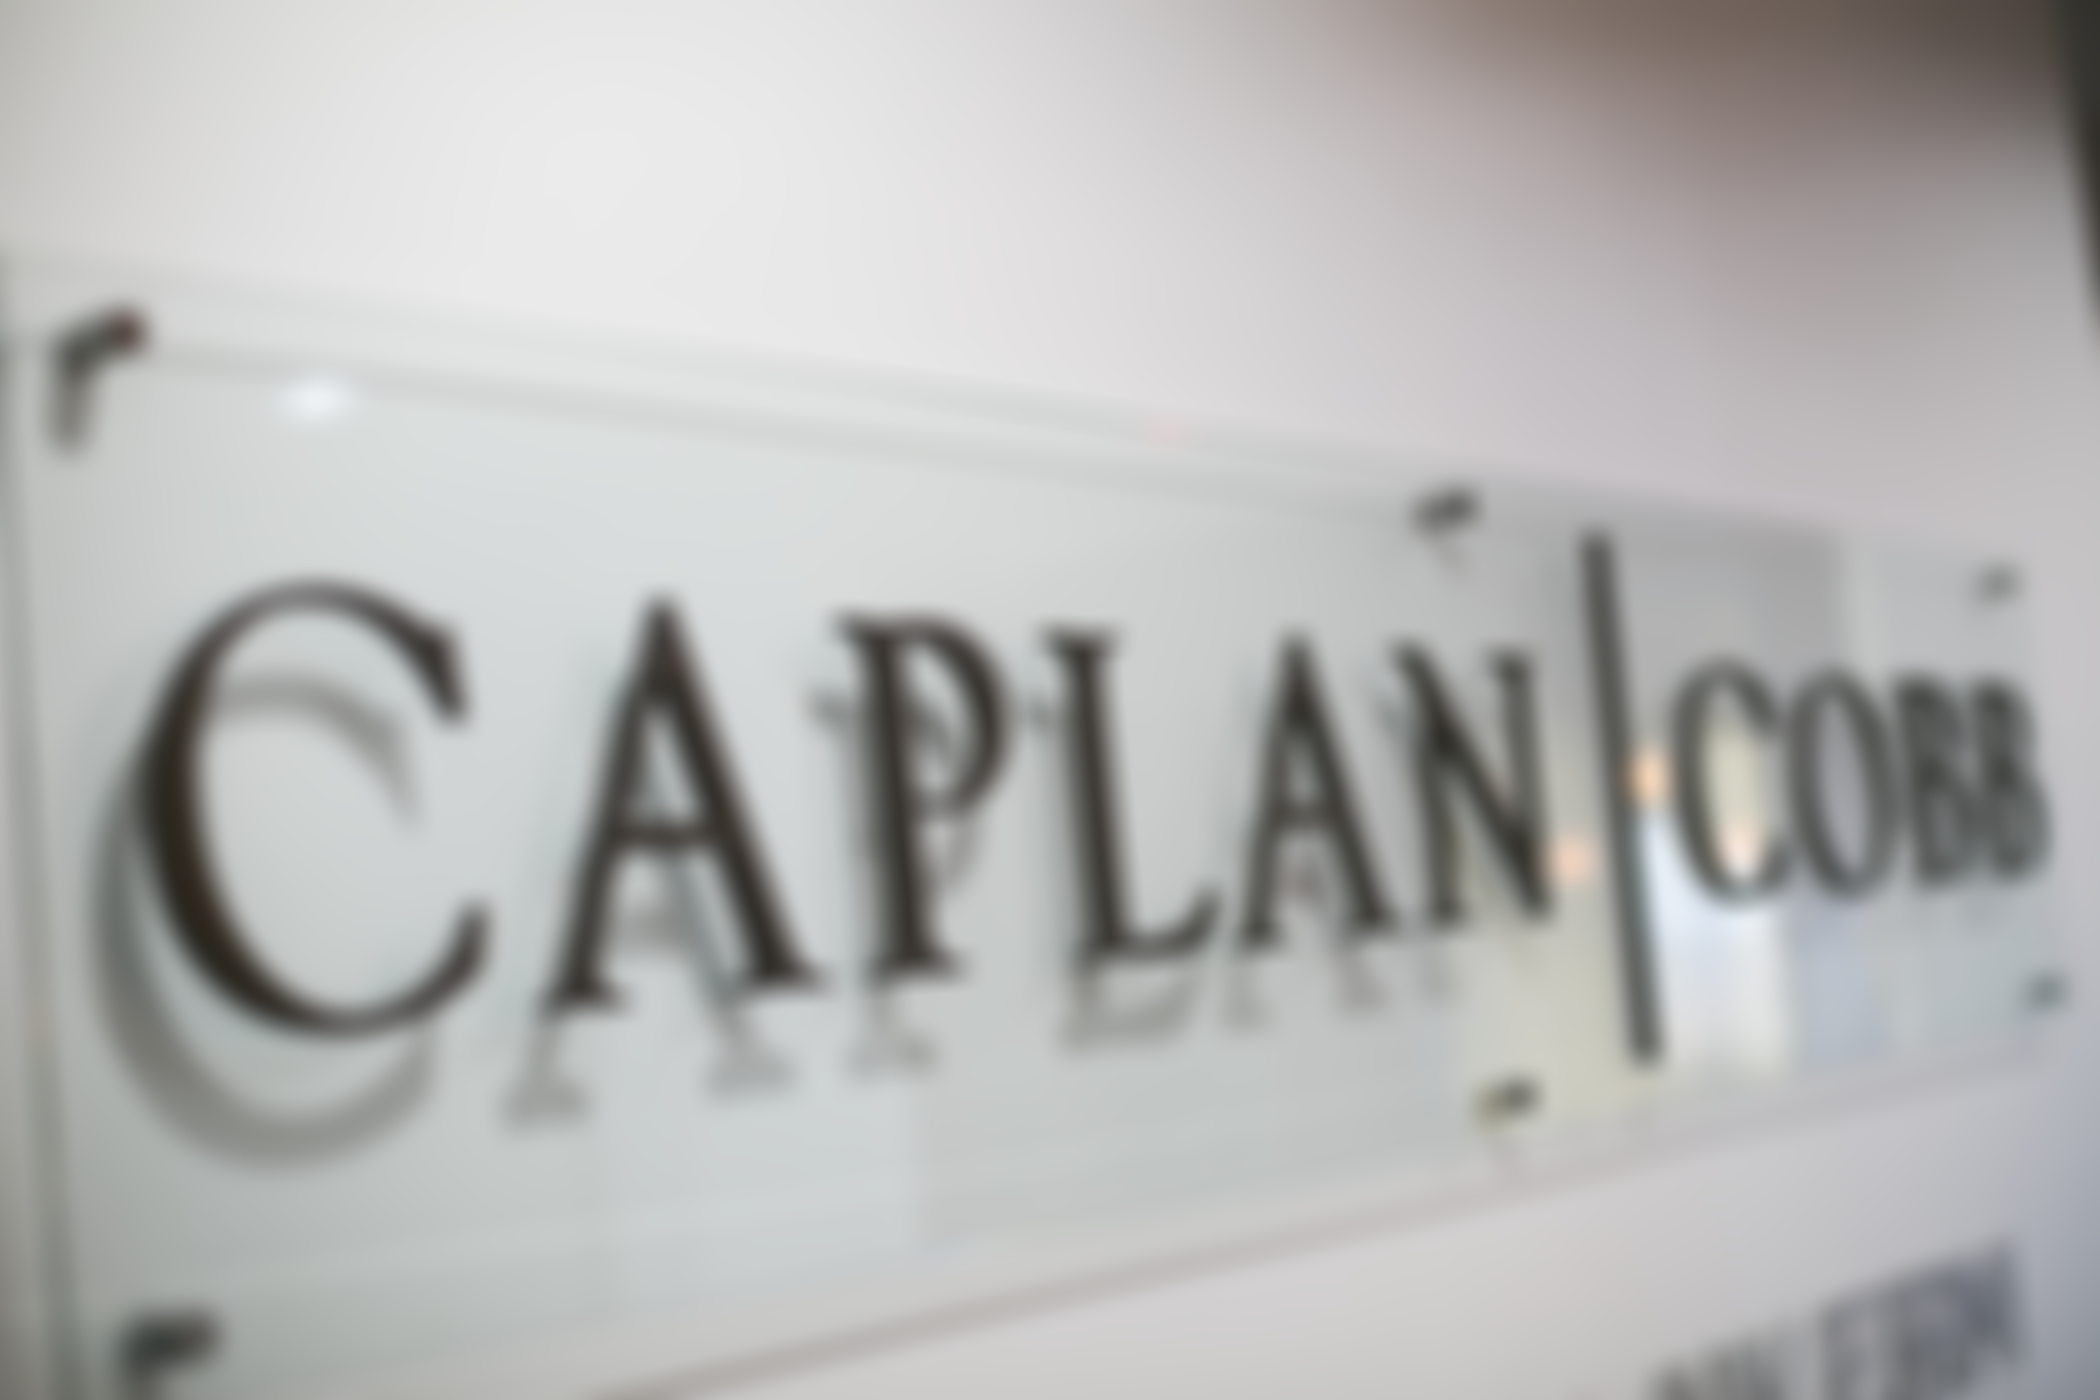 Caplan Cobb Seeks Part-Time Administrative Assistant